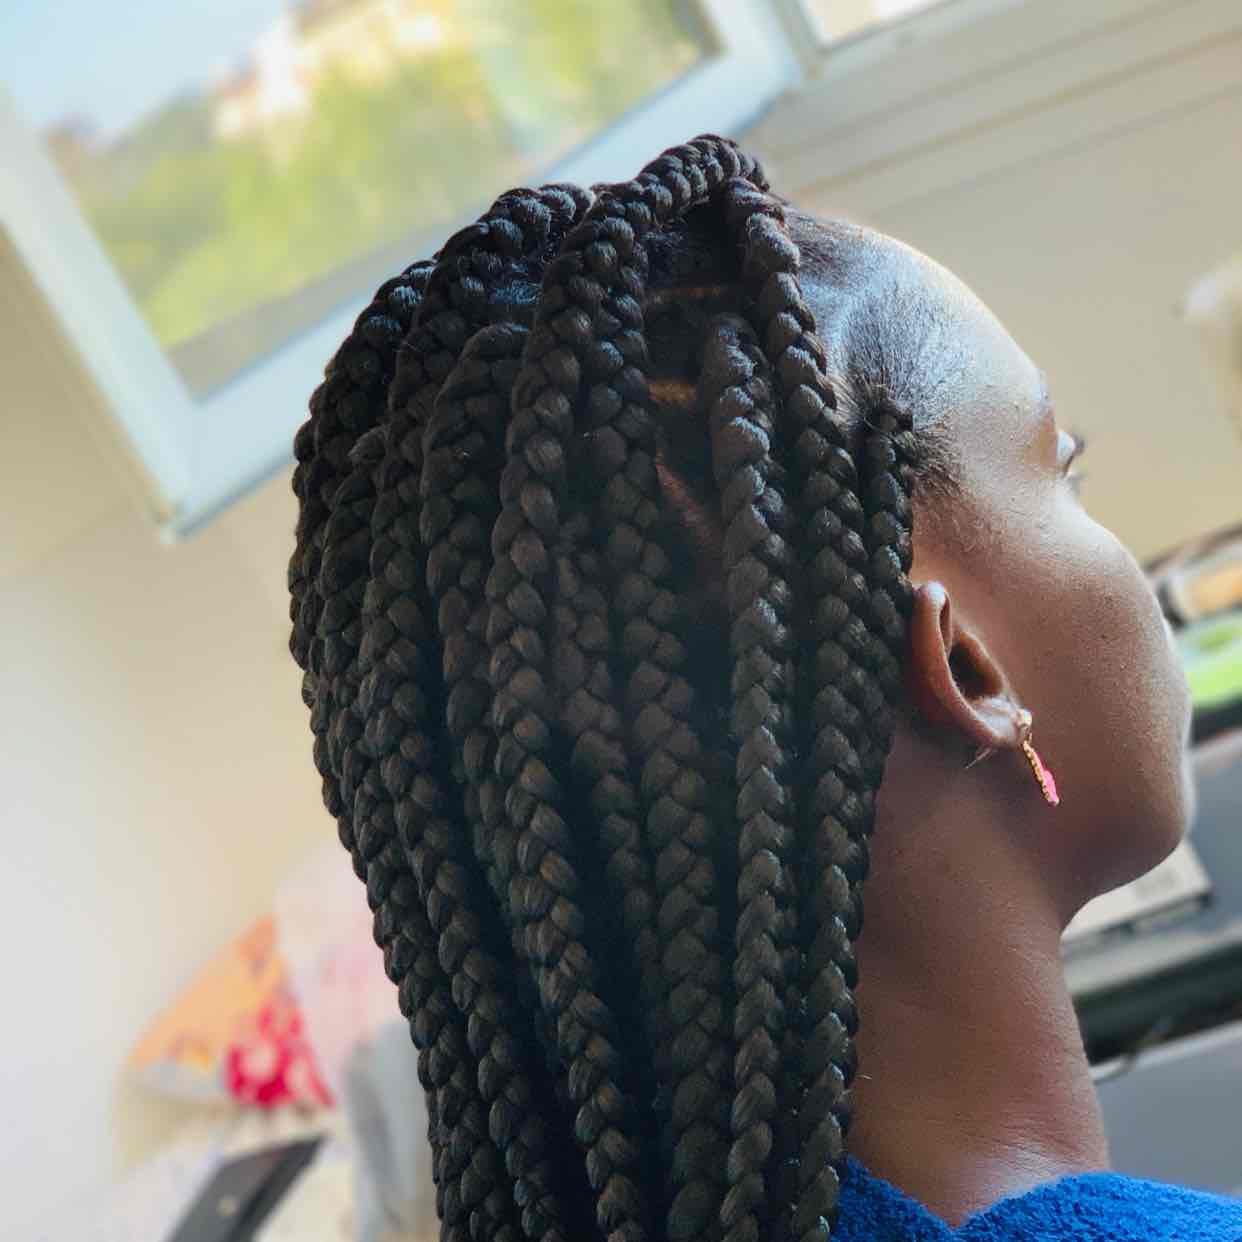 salon de coiffure afro tresse tresses box braids crochet braids vanilles tissages paris 75 77 78 91 92 93 94 95 XNSXWGYJ